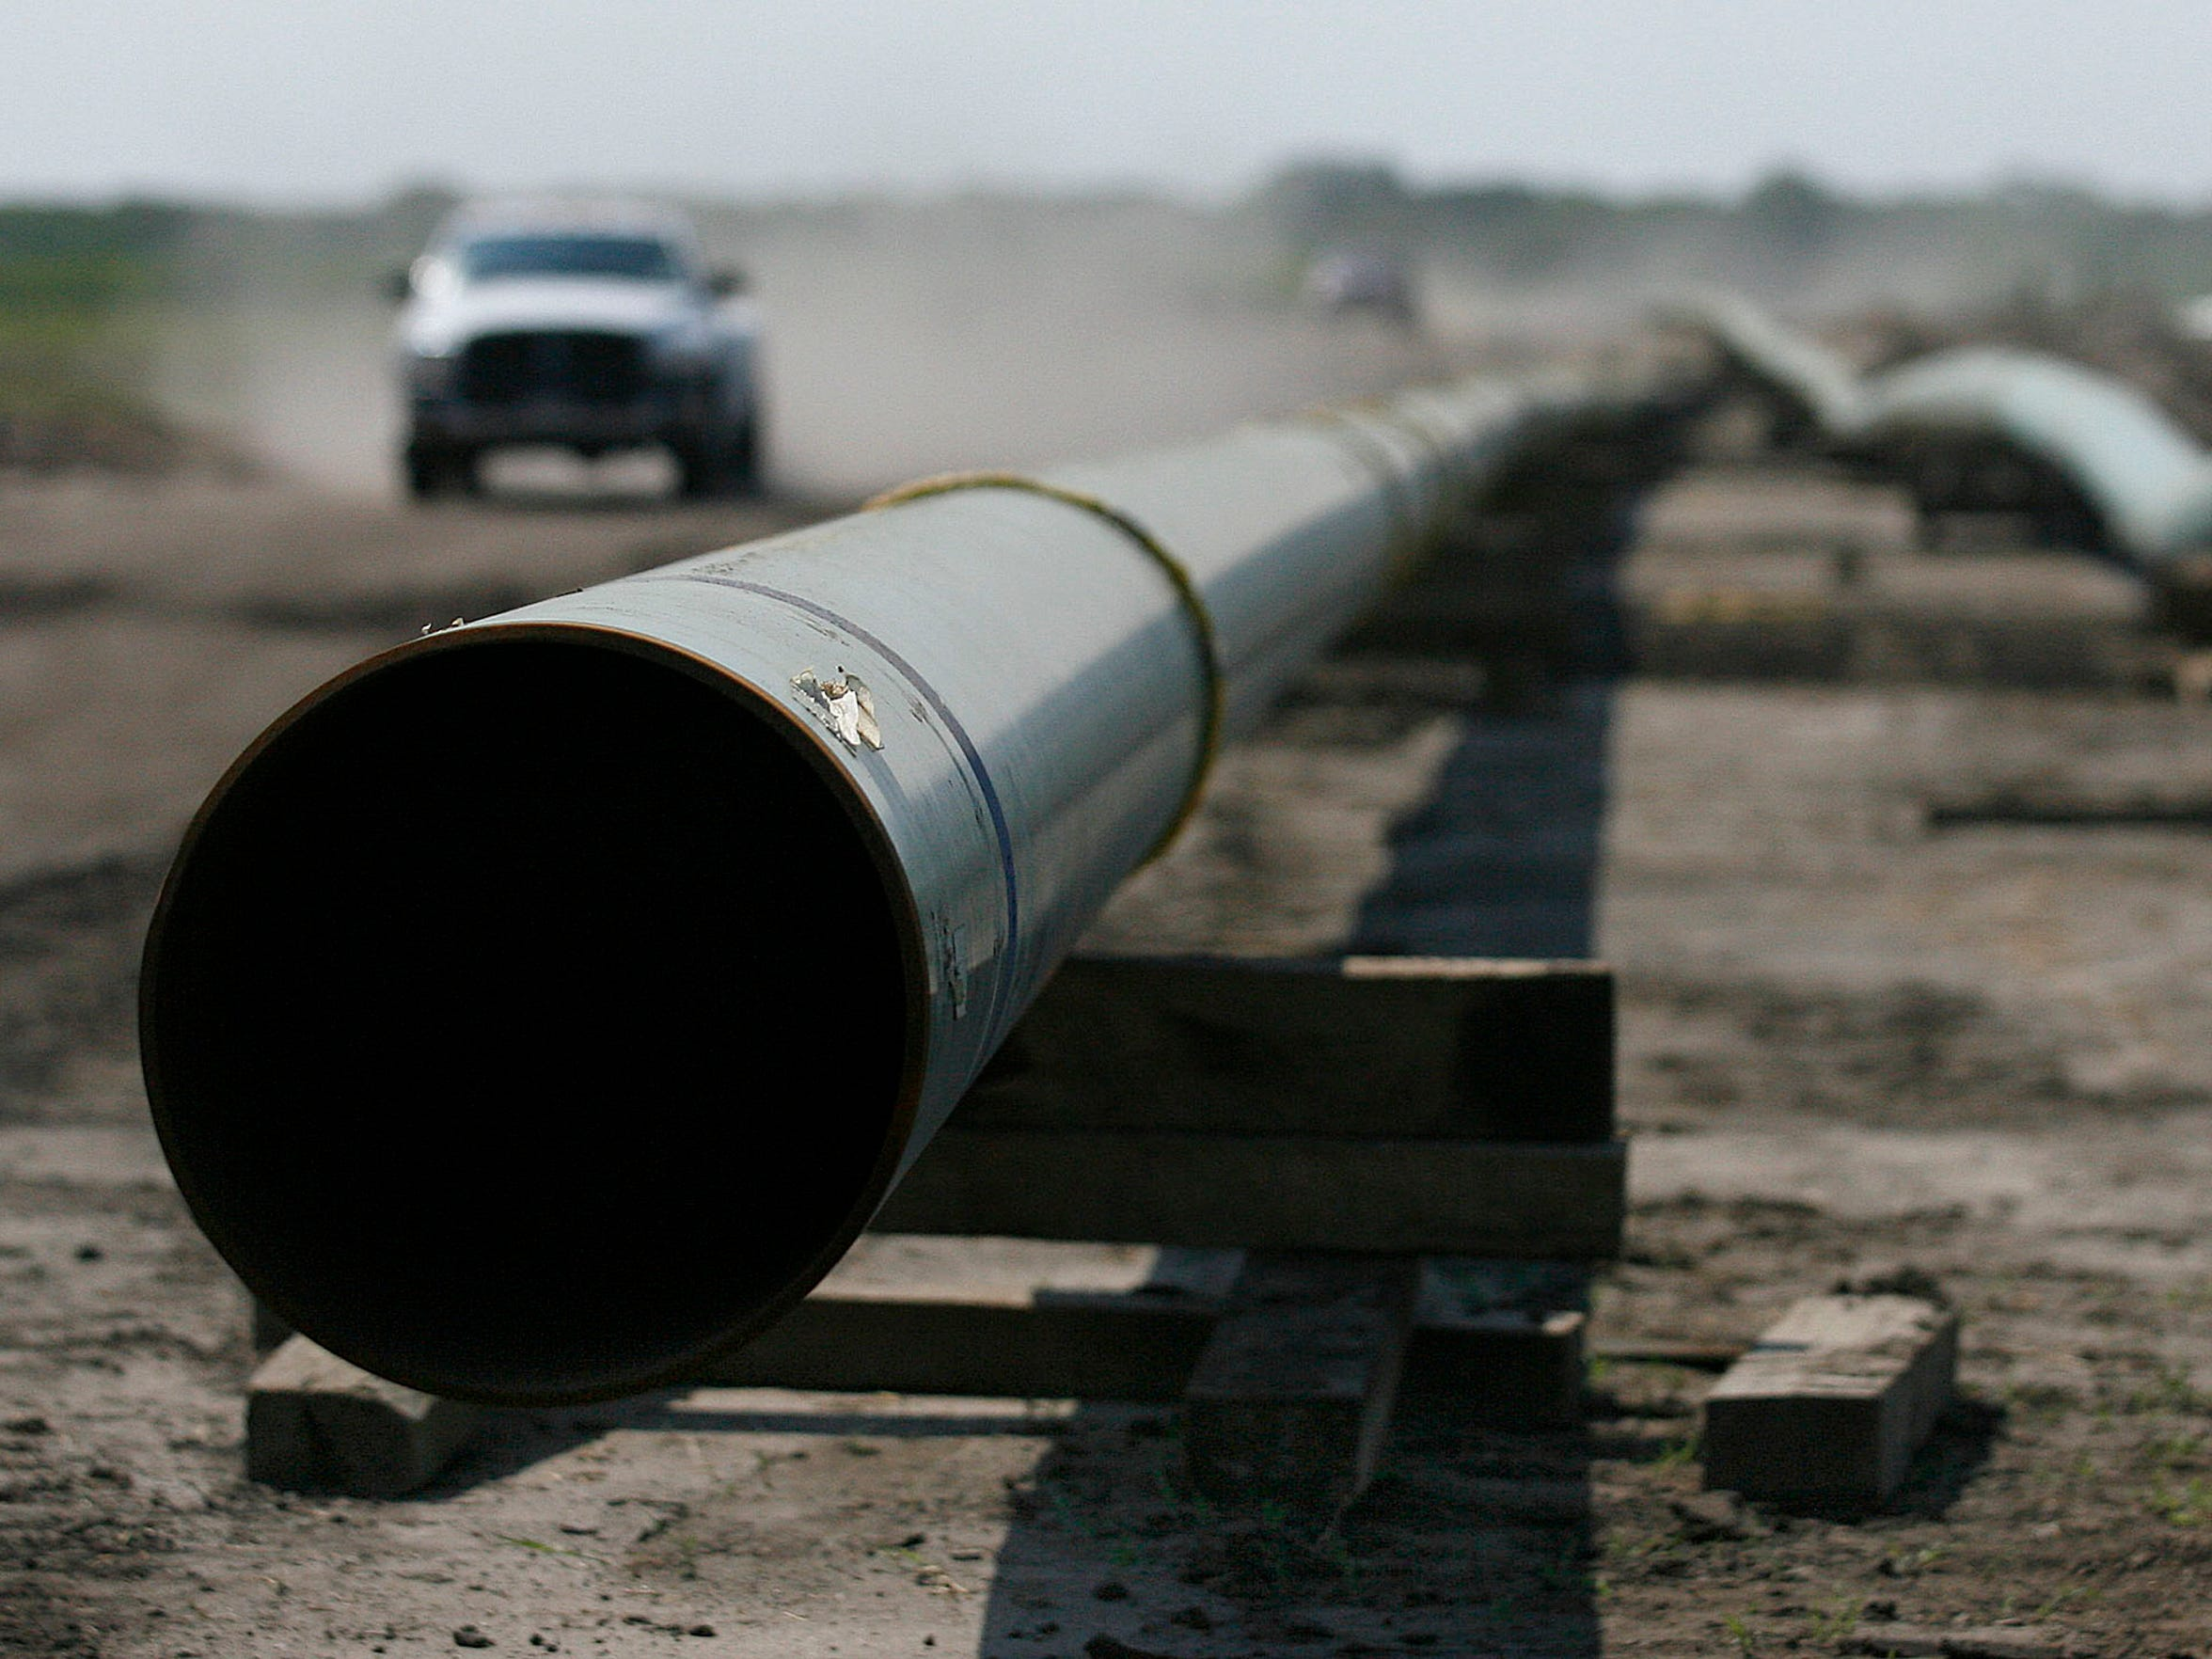 Pipelines are being built to connect the Corpus Christi area to the Permian Basin and Eagle Ford Shale.